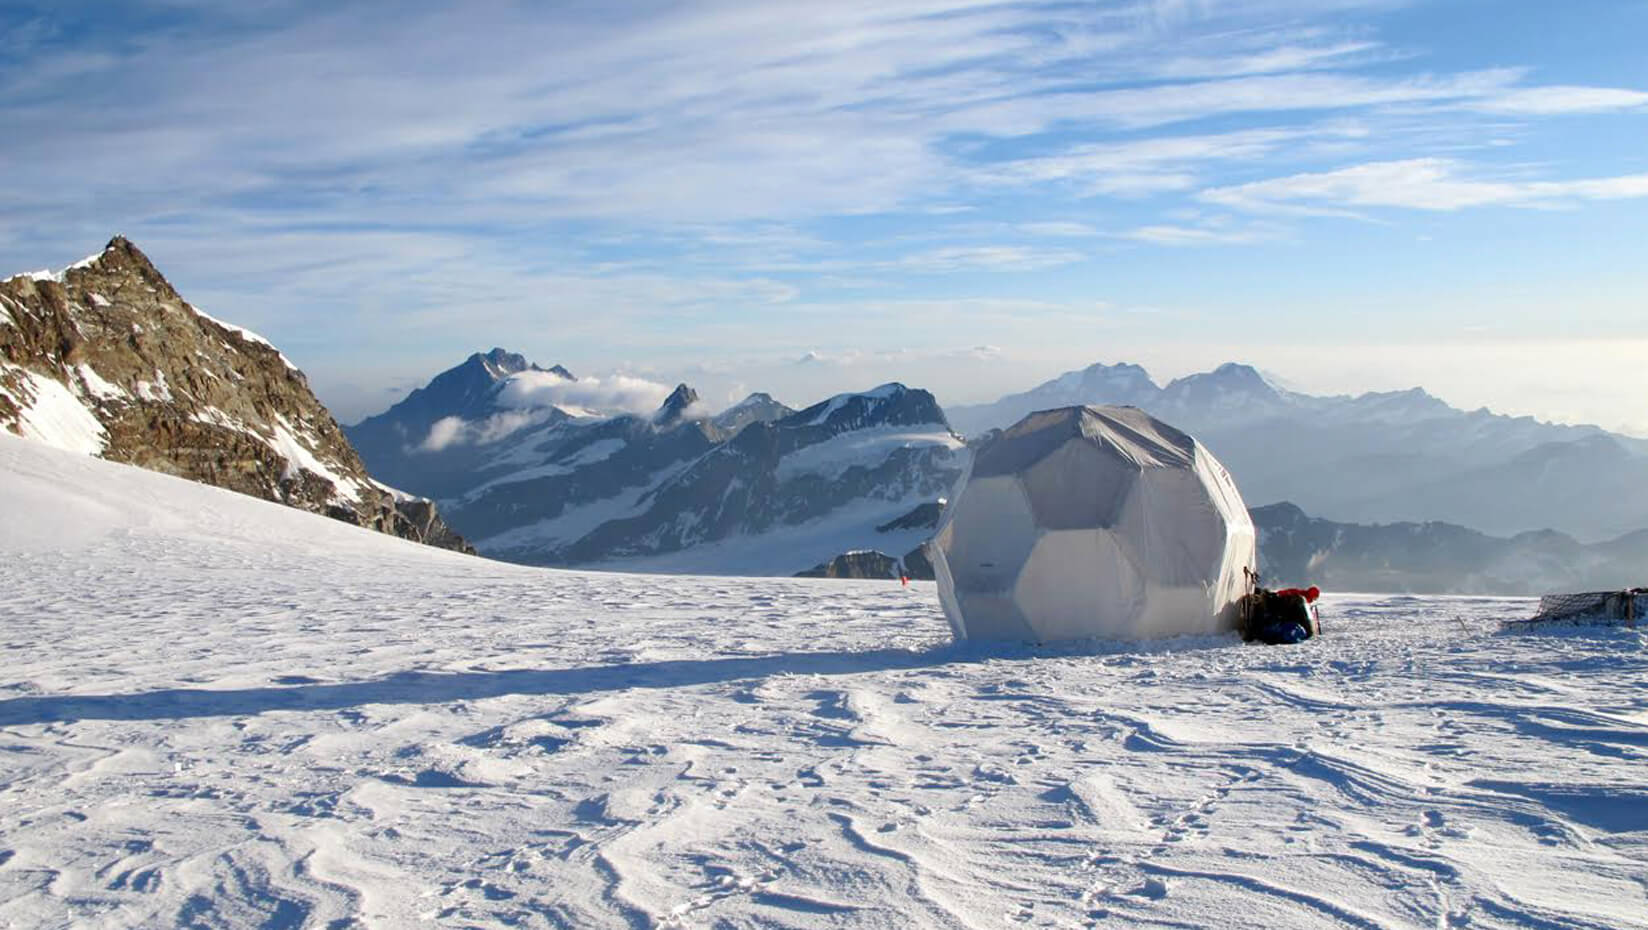 Tent on a snowy mountain